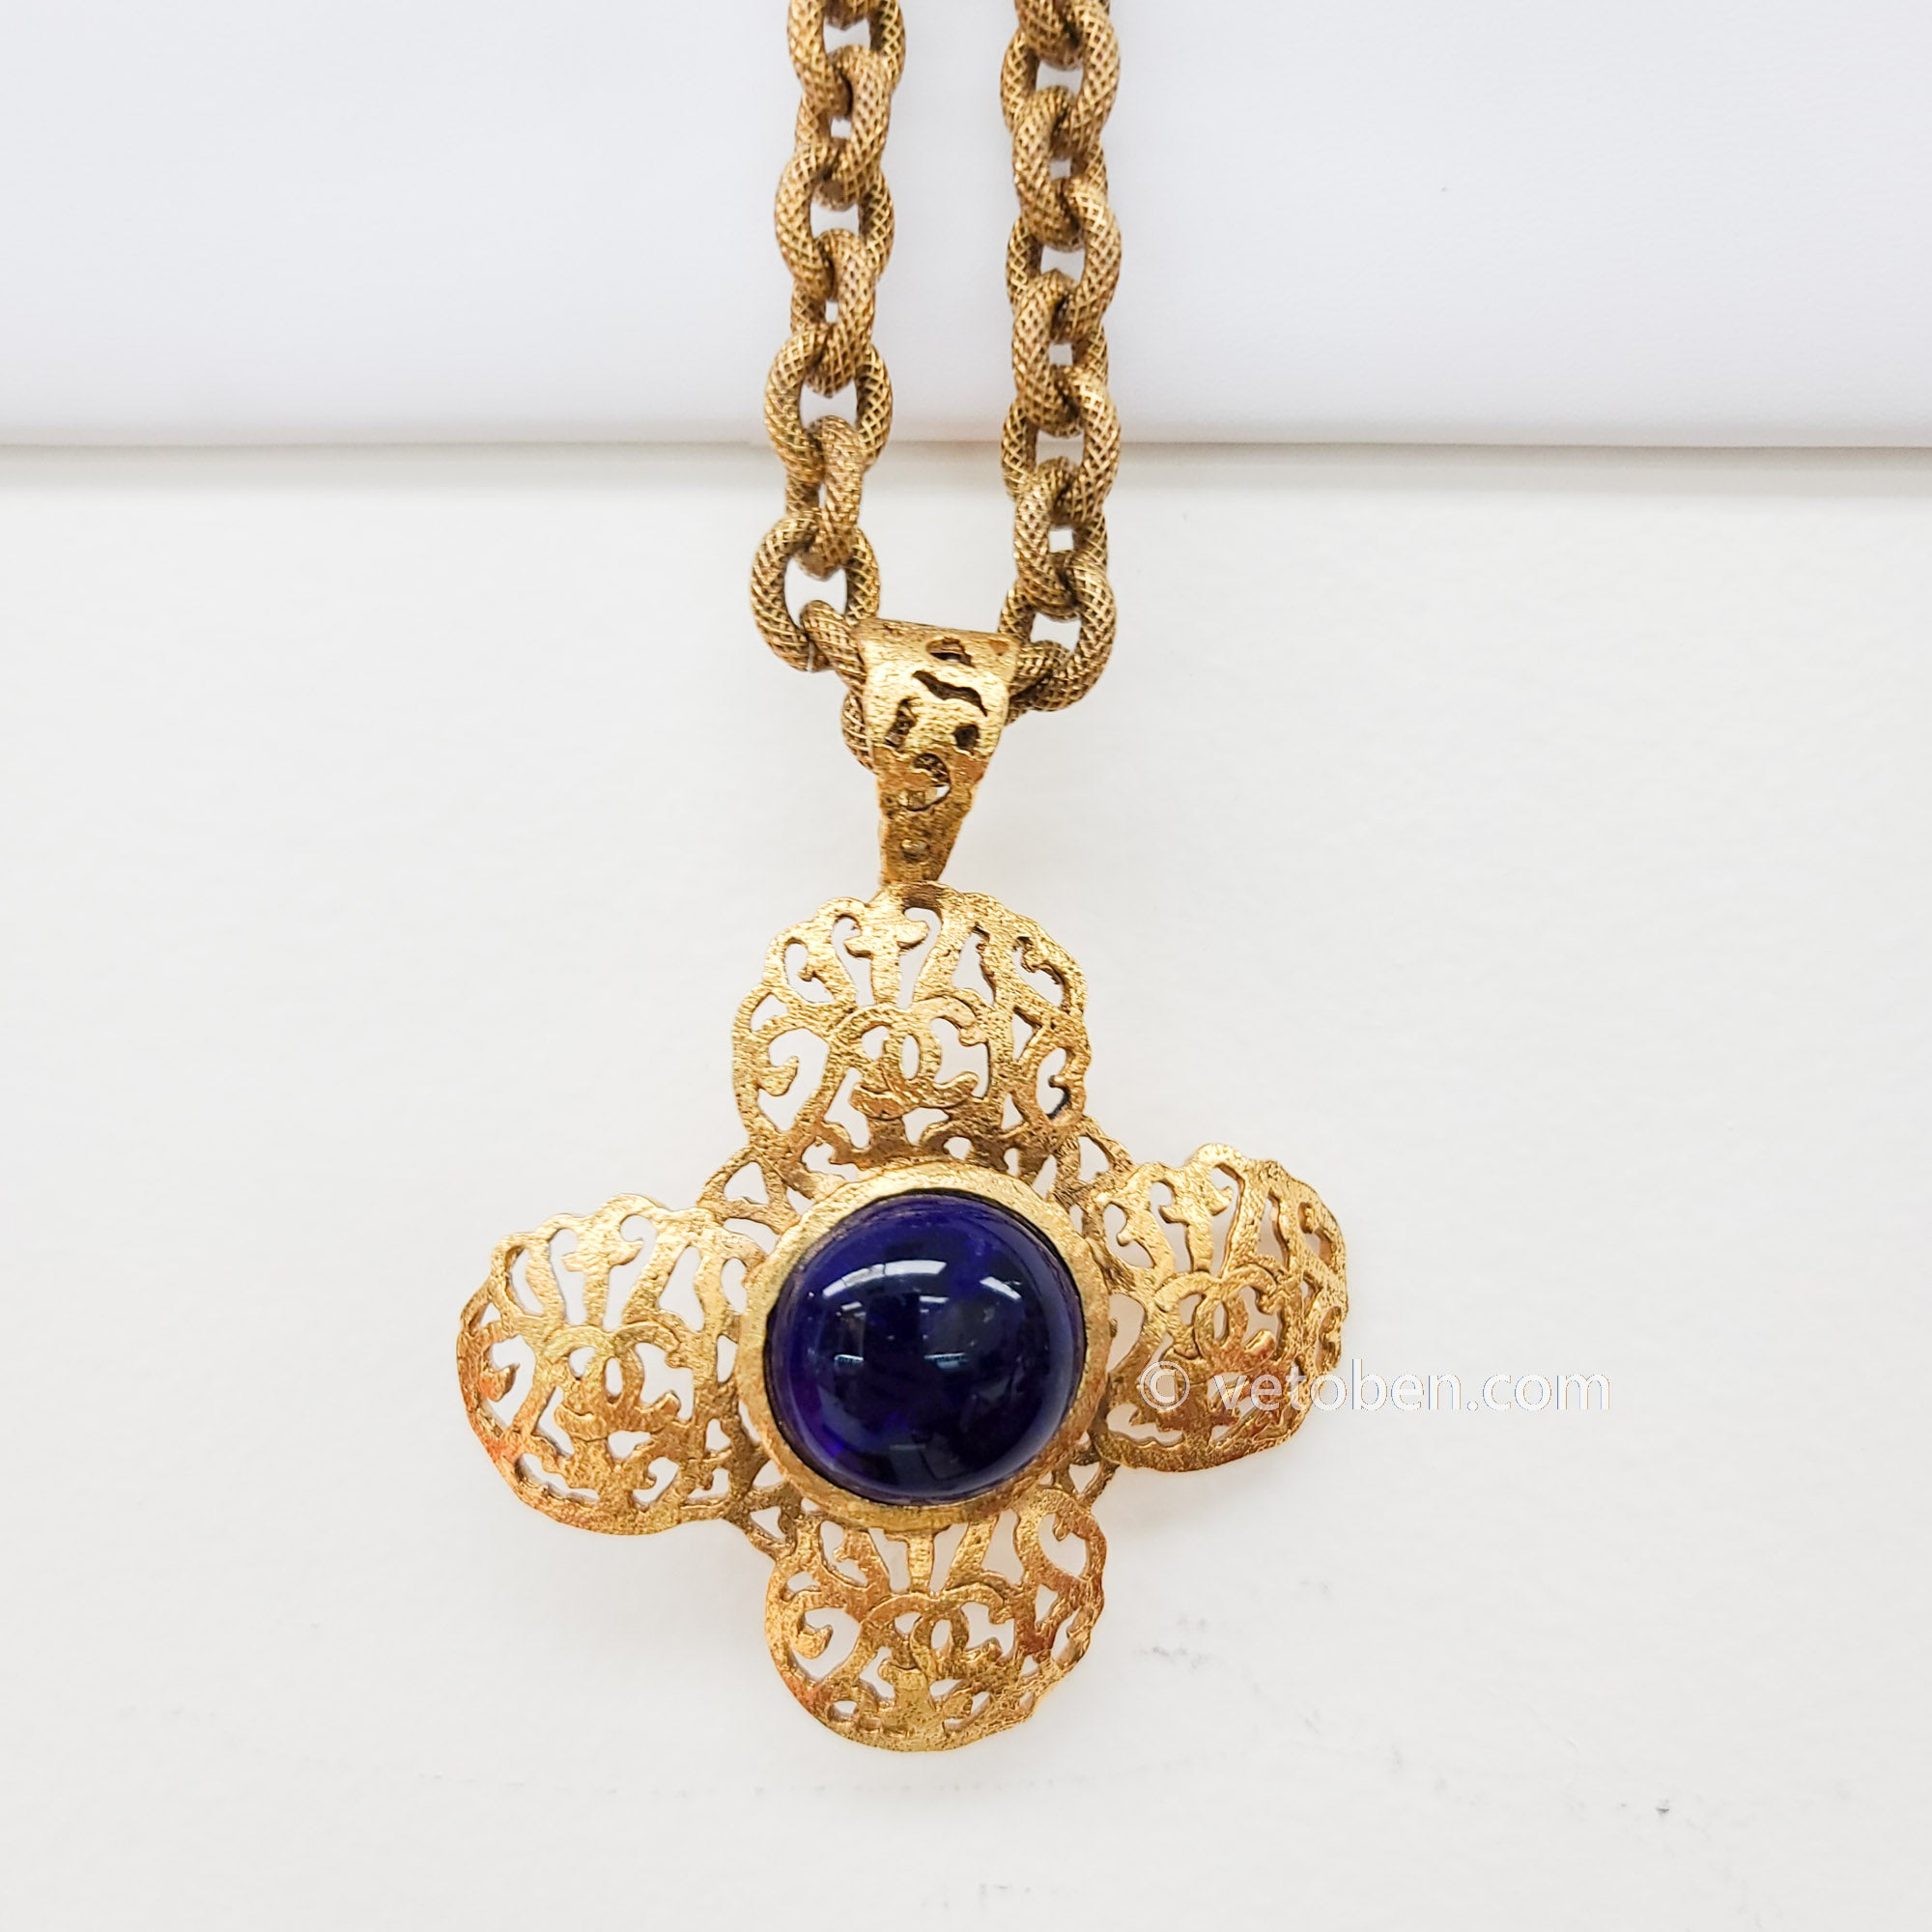 CHANEL vintage Pendant necklace